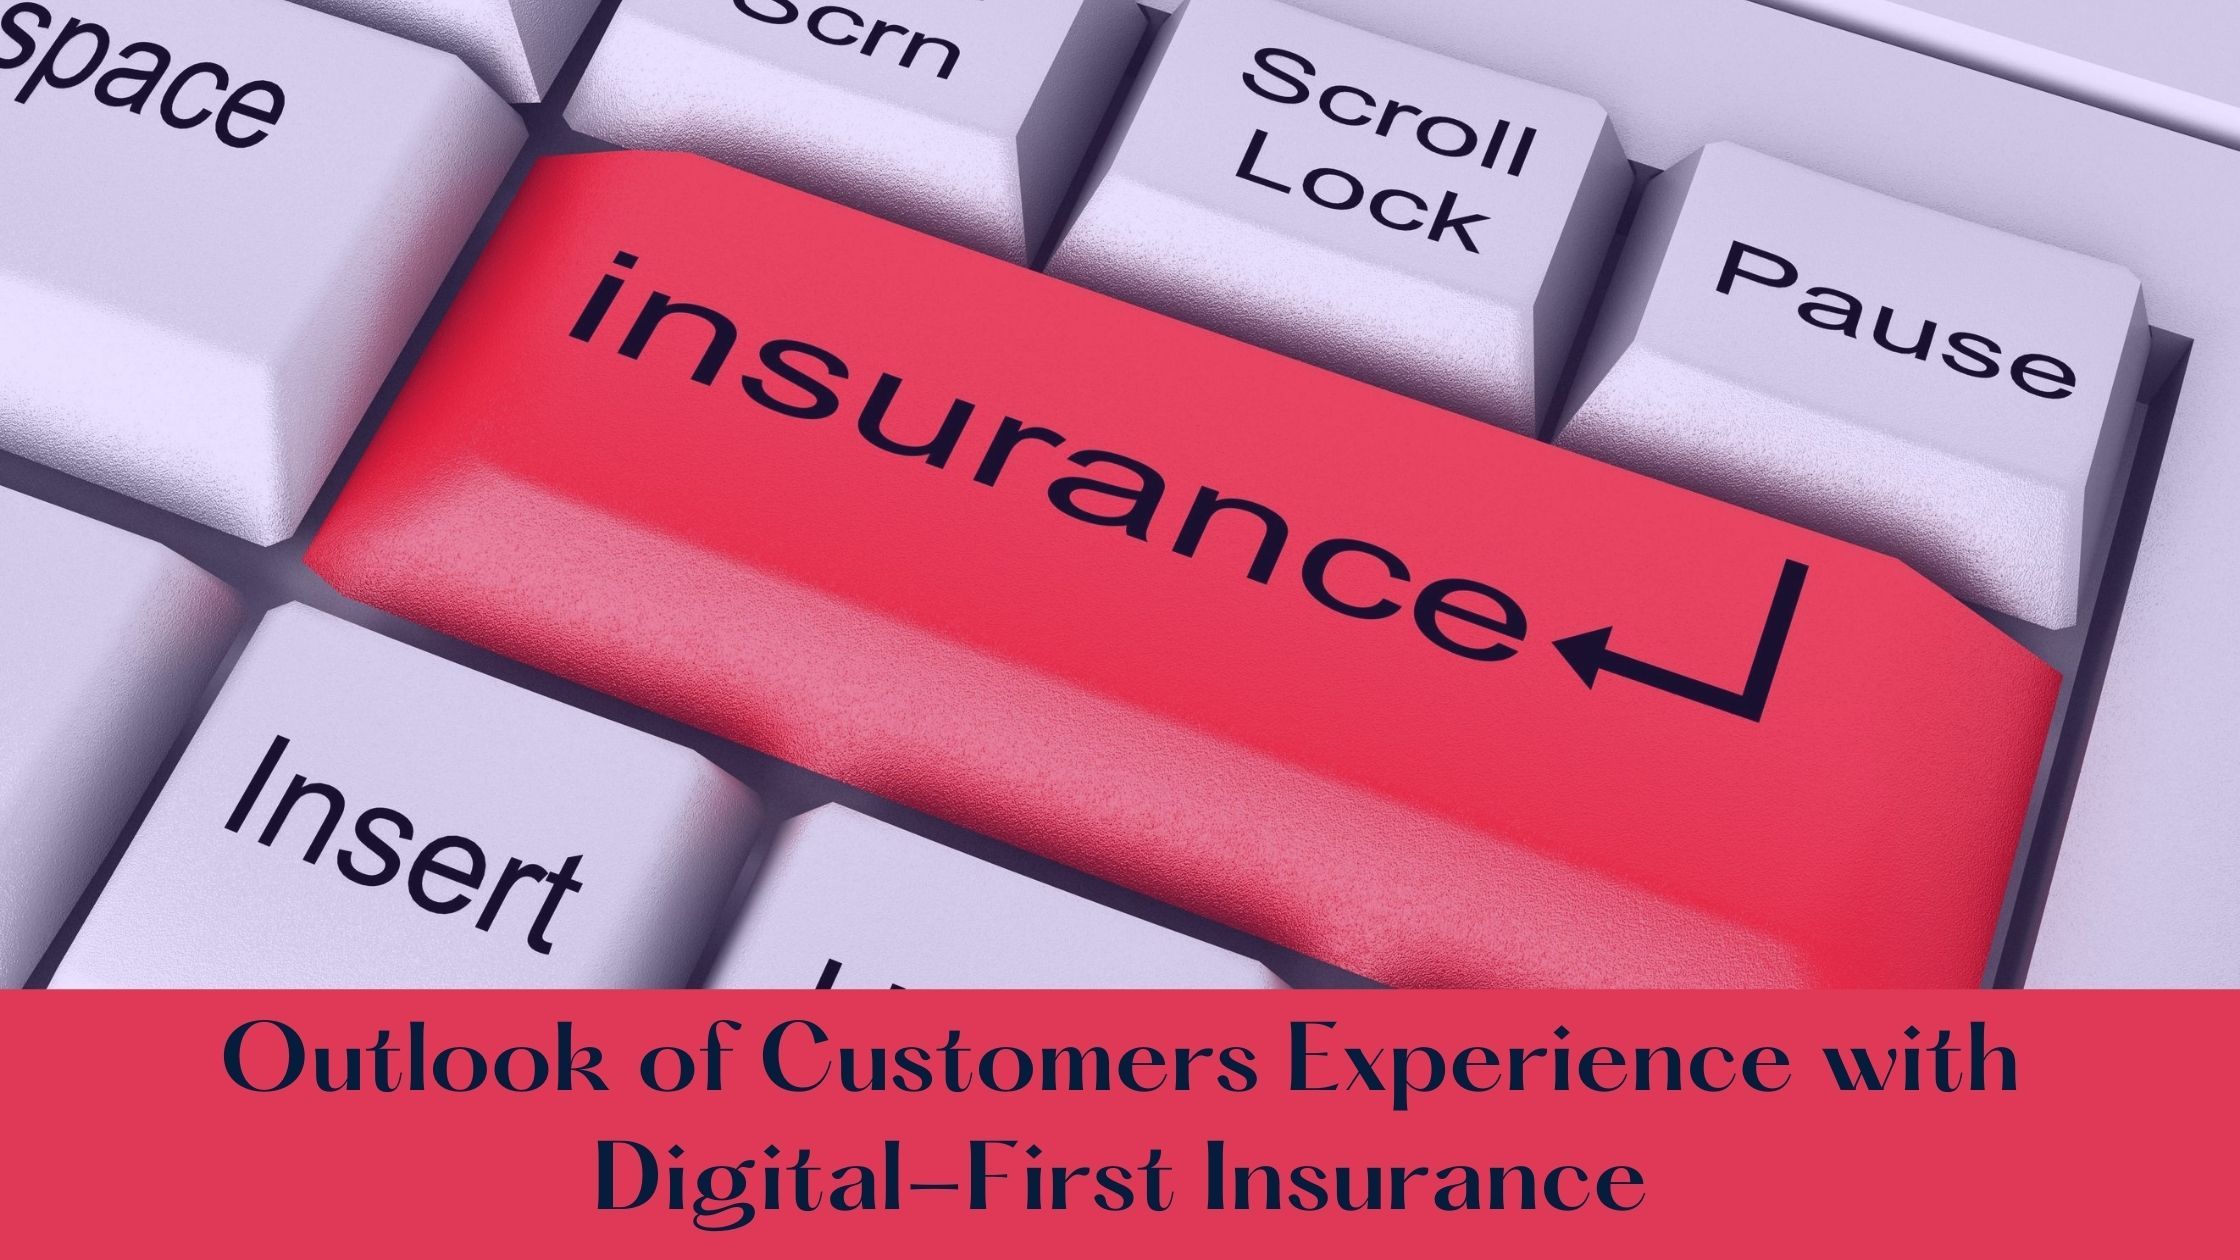 Outlook_of_Customers_Experience_with_Digital-First_Insurance